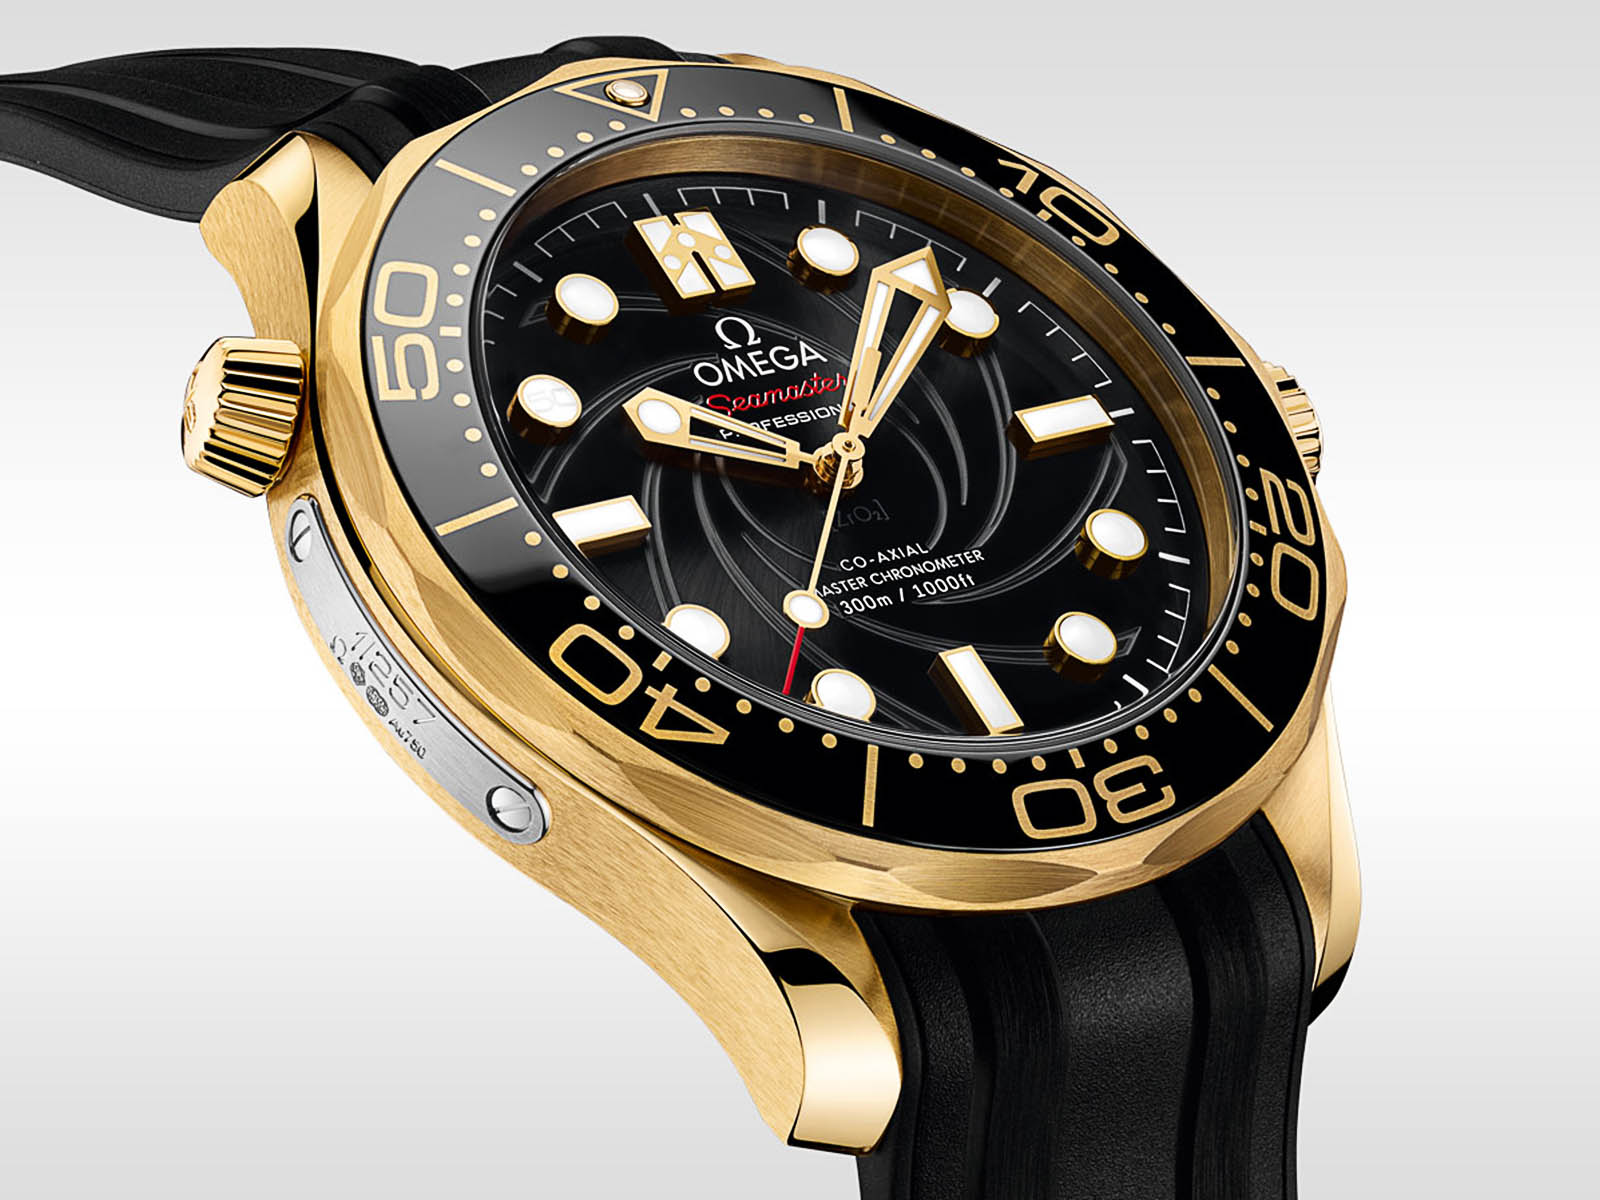 210-62-42-20-01-001-omega-seamaster-diver-300m-omega-co-axial-master-chronometer-42-mm-1.jpg